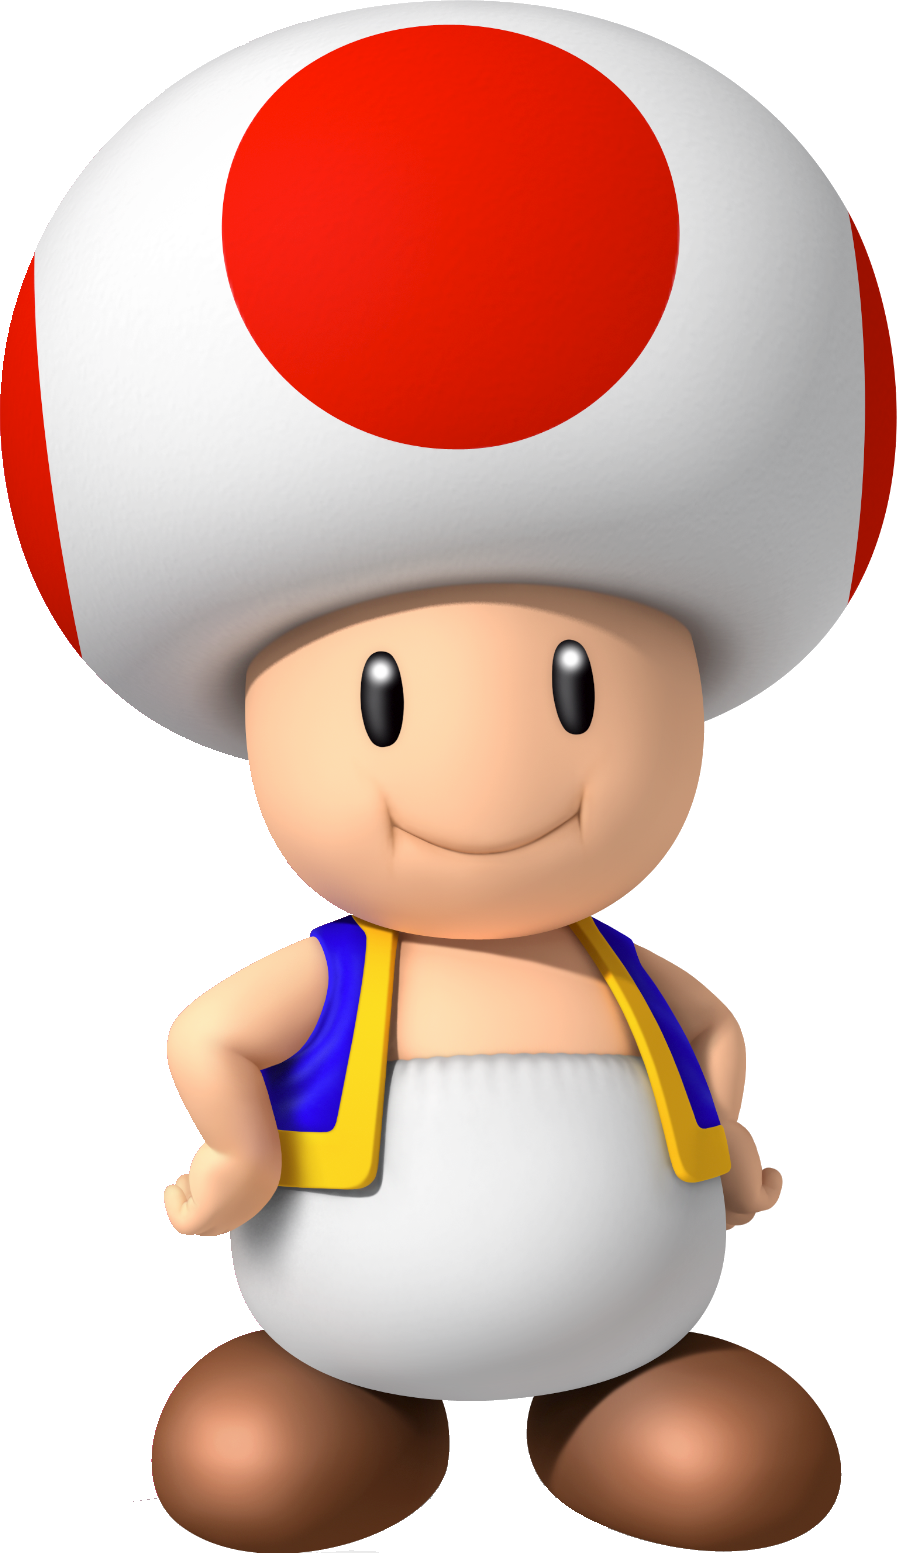 Toad mario fiction wrestling. Wrestlers clipart single